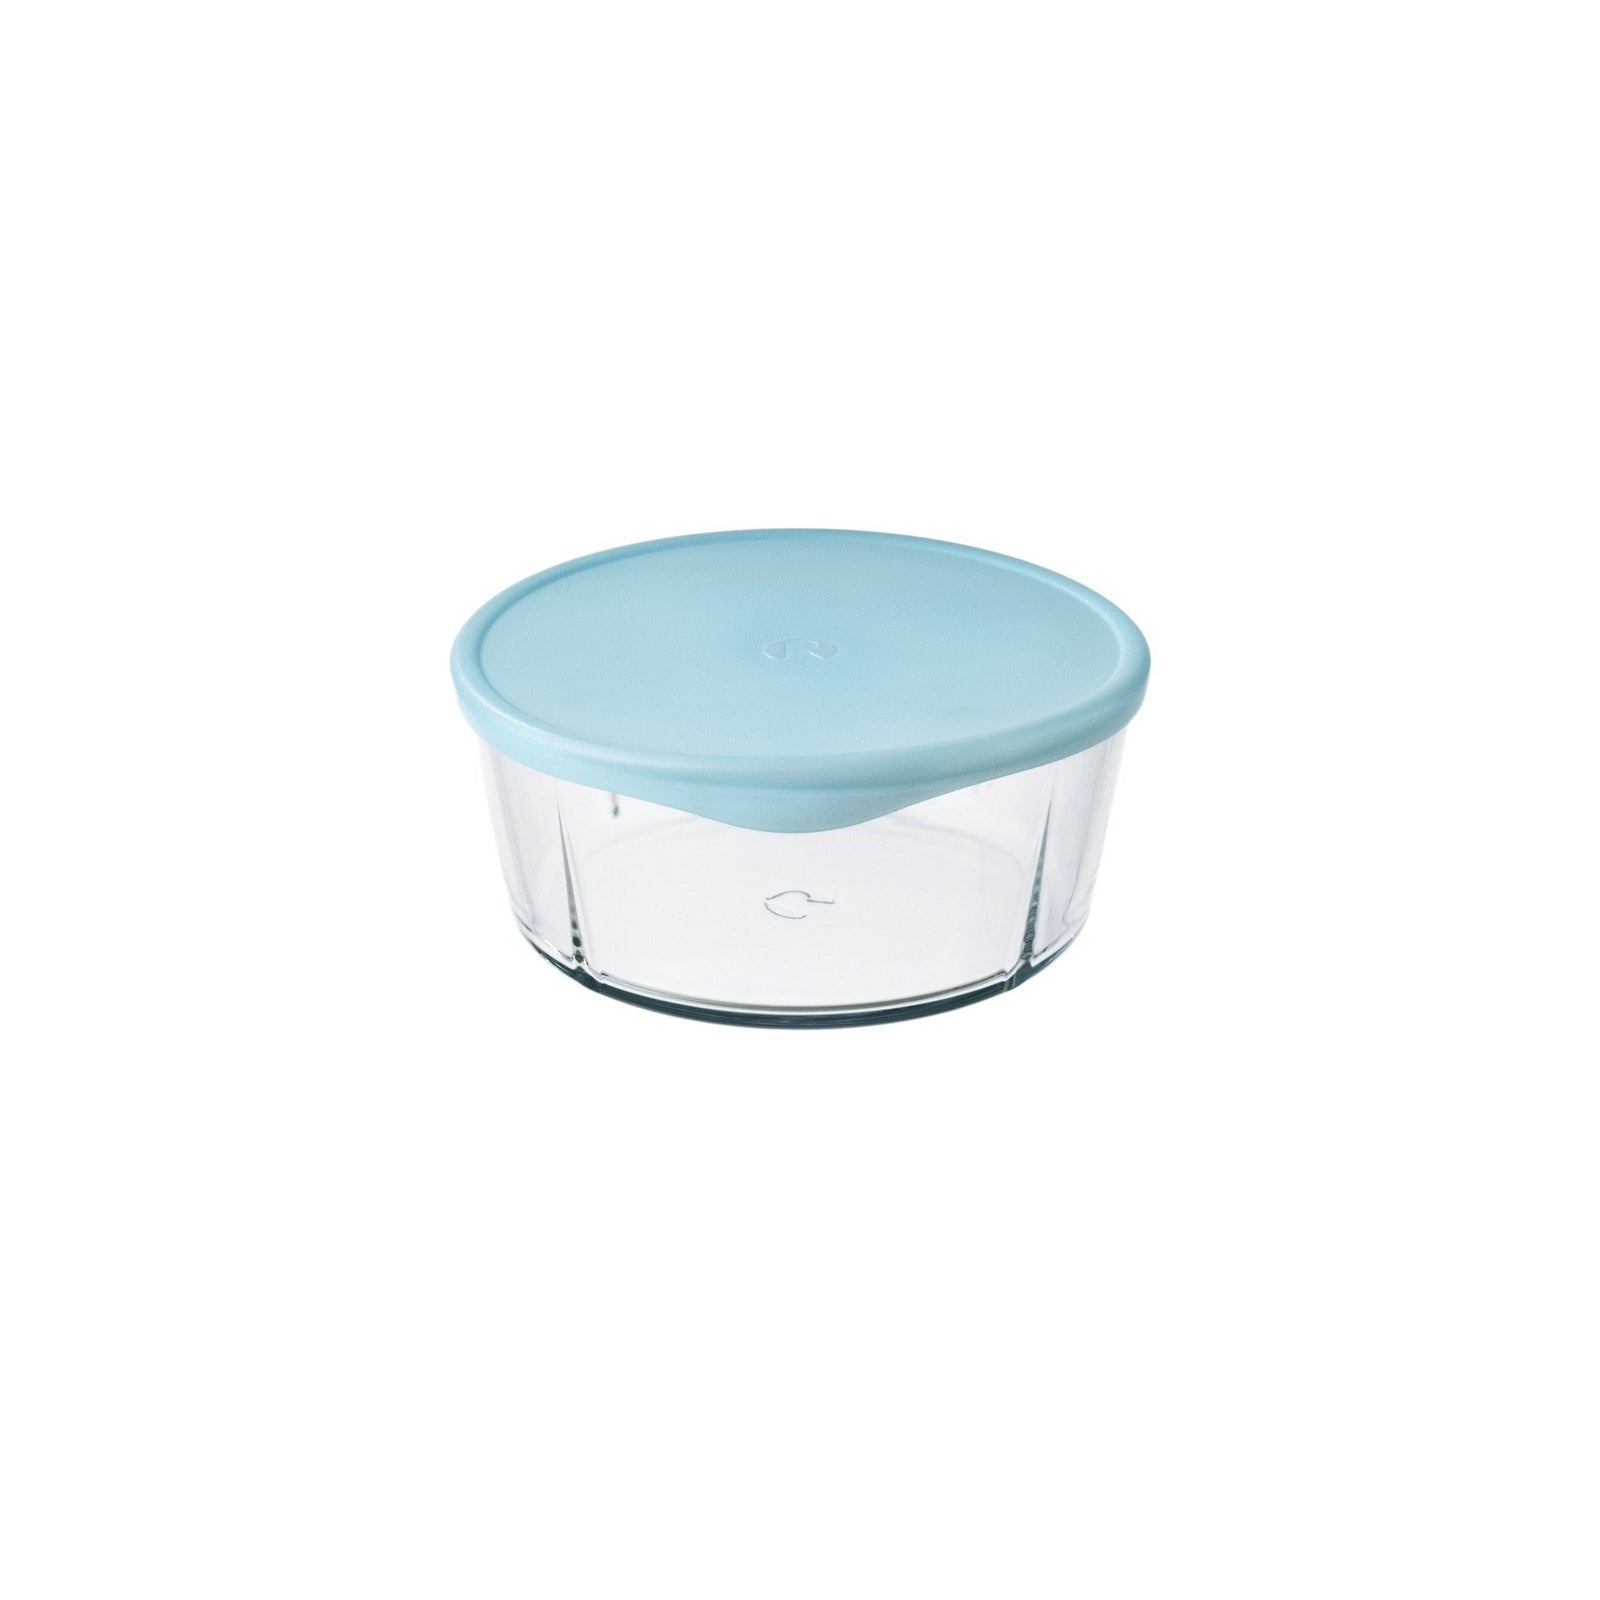 Grand Cru Oven Bowl w/Lid, Small